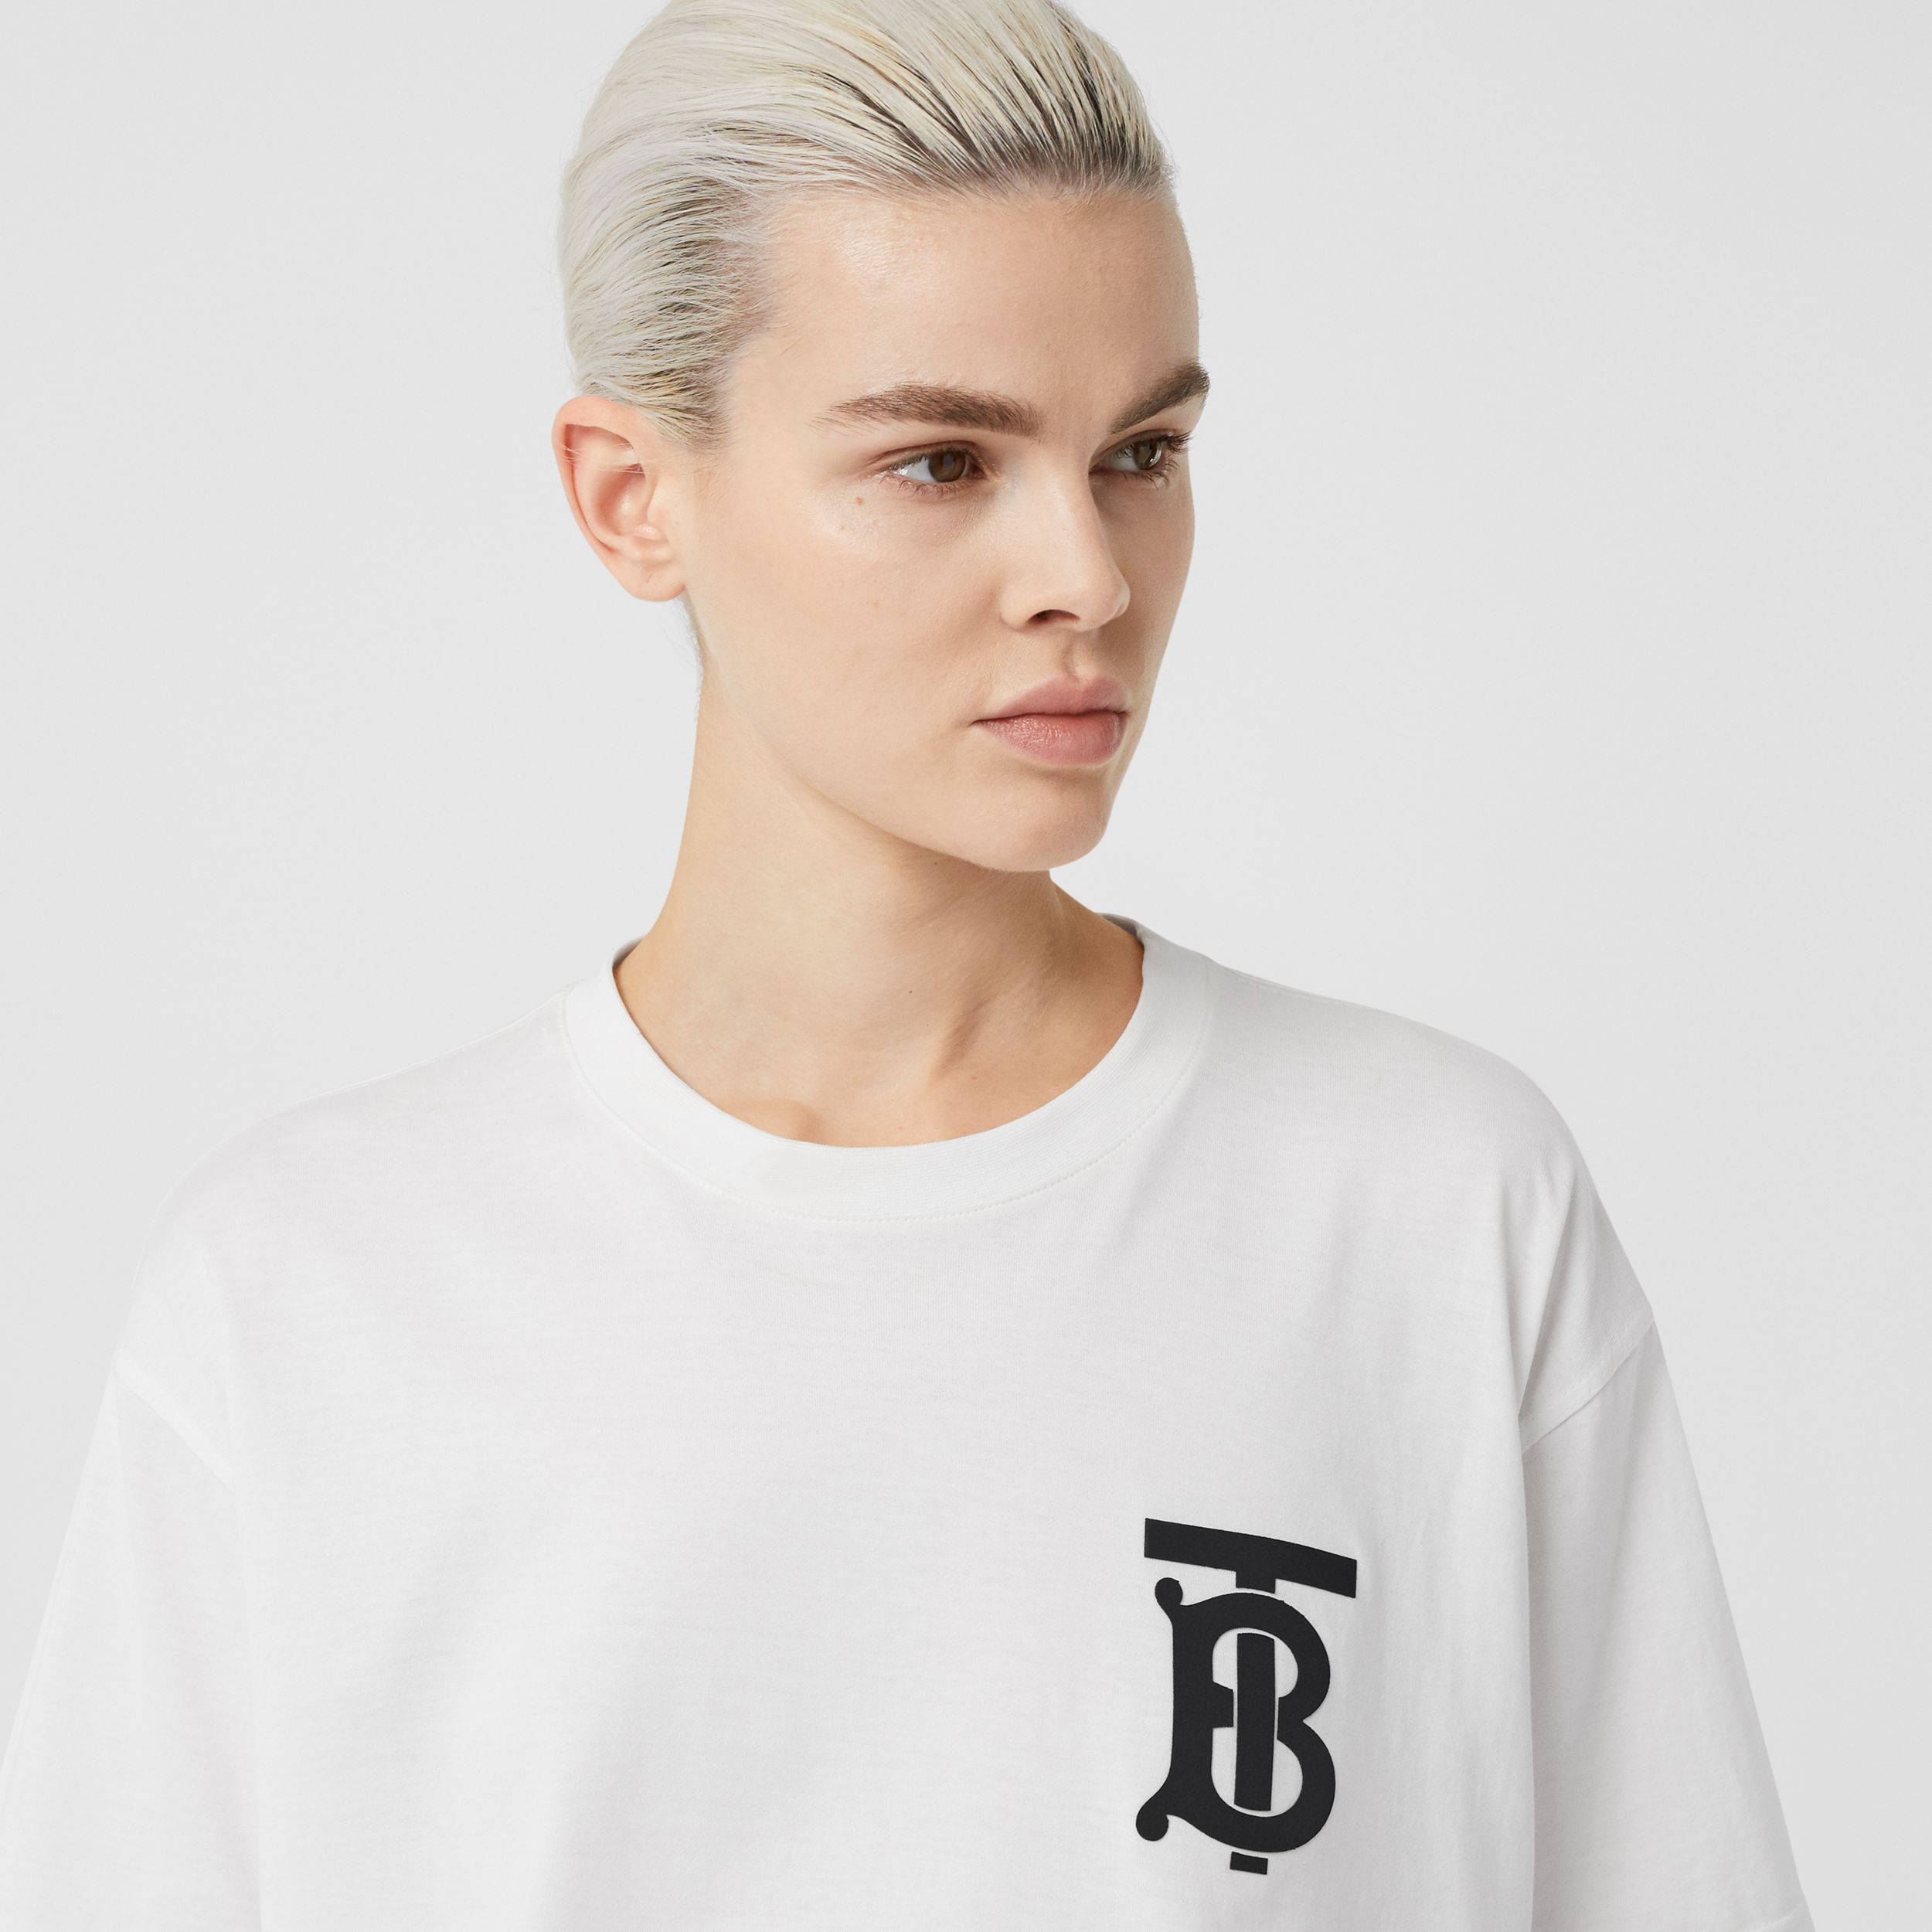 Monogram Motif Cotton Oversized T-shirt in White - Women | Burberry Hong Kong S.A.R. - 2